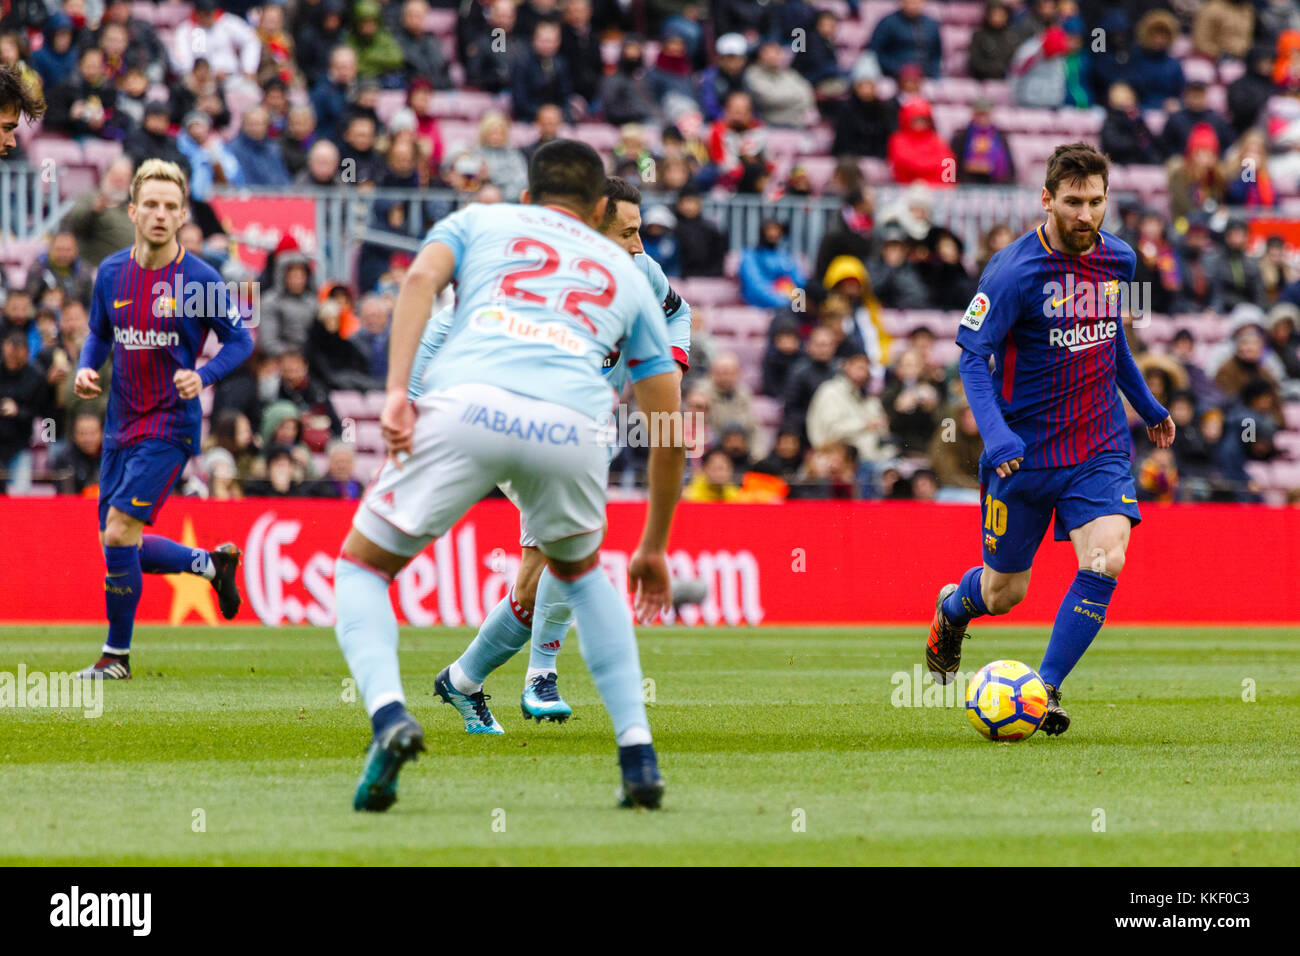 Barcelona, Spain. 02nd Dec, 2017. (10) Messi during the match of the La Liga between FC Barcelona and RC Celta at - Stock Image